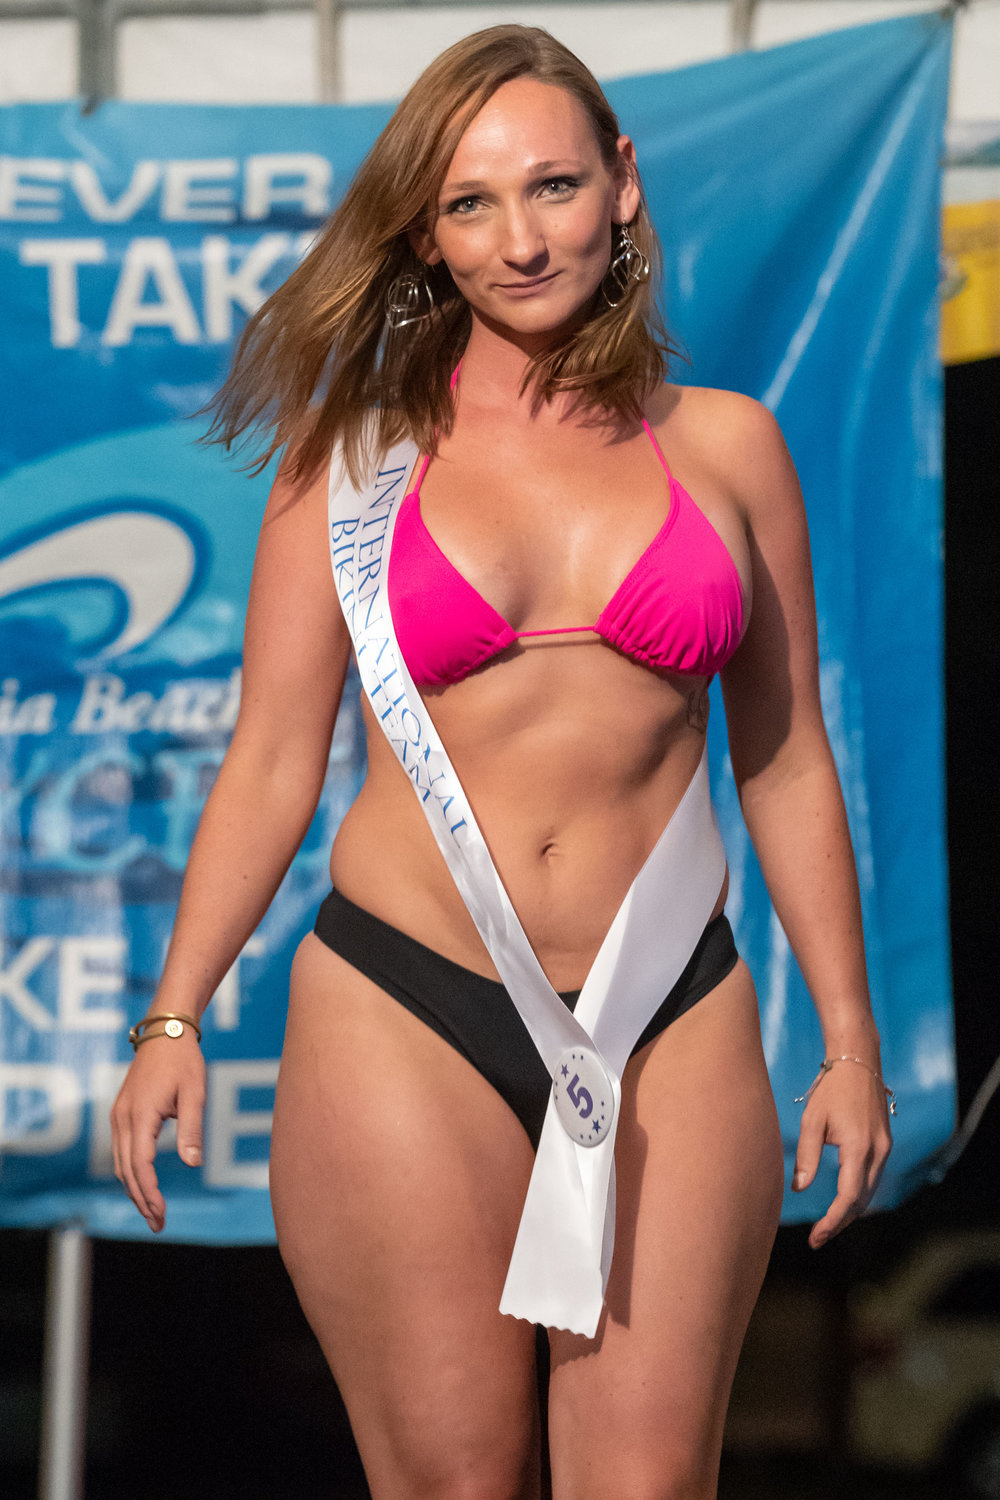 Preliminary Round 9 of the 2018 Coastal Edge Miss ECSC Pageant held at Coastal Edge Presented by Pacifico Beer DoctorStonersVodka ALT 105.3 Chesapeake Bay Distillery iHeartRadio Virginia Beach Nightlife International Bikini TeamThe top 4 advanced to the semi-finals on August 25th at the 56th Annual Coastal Edge East Coast Surfing Championship Presented by Vans and Fueled by Monster Energy#ECSC2018 #MissECSC #ECSC #CoastalEdge #monsterenergy #vans #eastcoastsurfingchampionship #DoctorStonersVodka #ALT105 #ChesapeakeBayDistillery #iheartradio #VirginiaBeachNightlife #internationalbikiniteam #virginiabeachjaycees